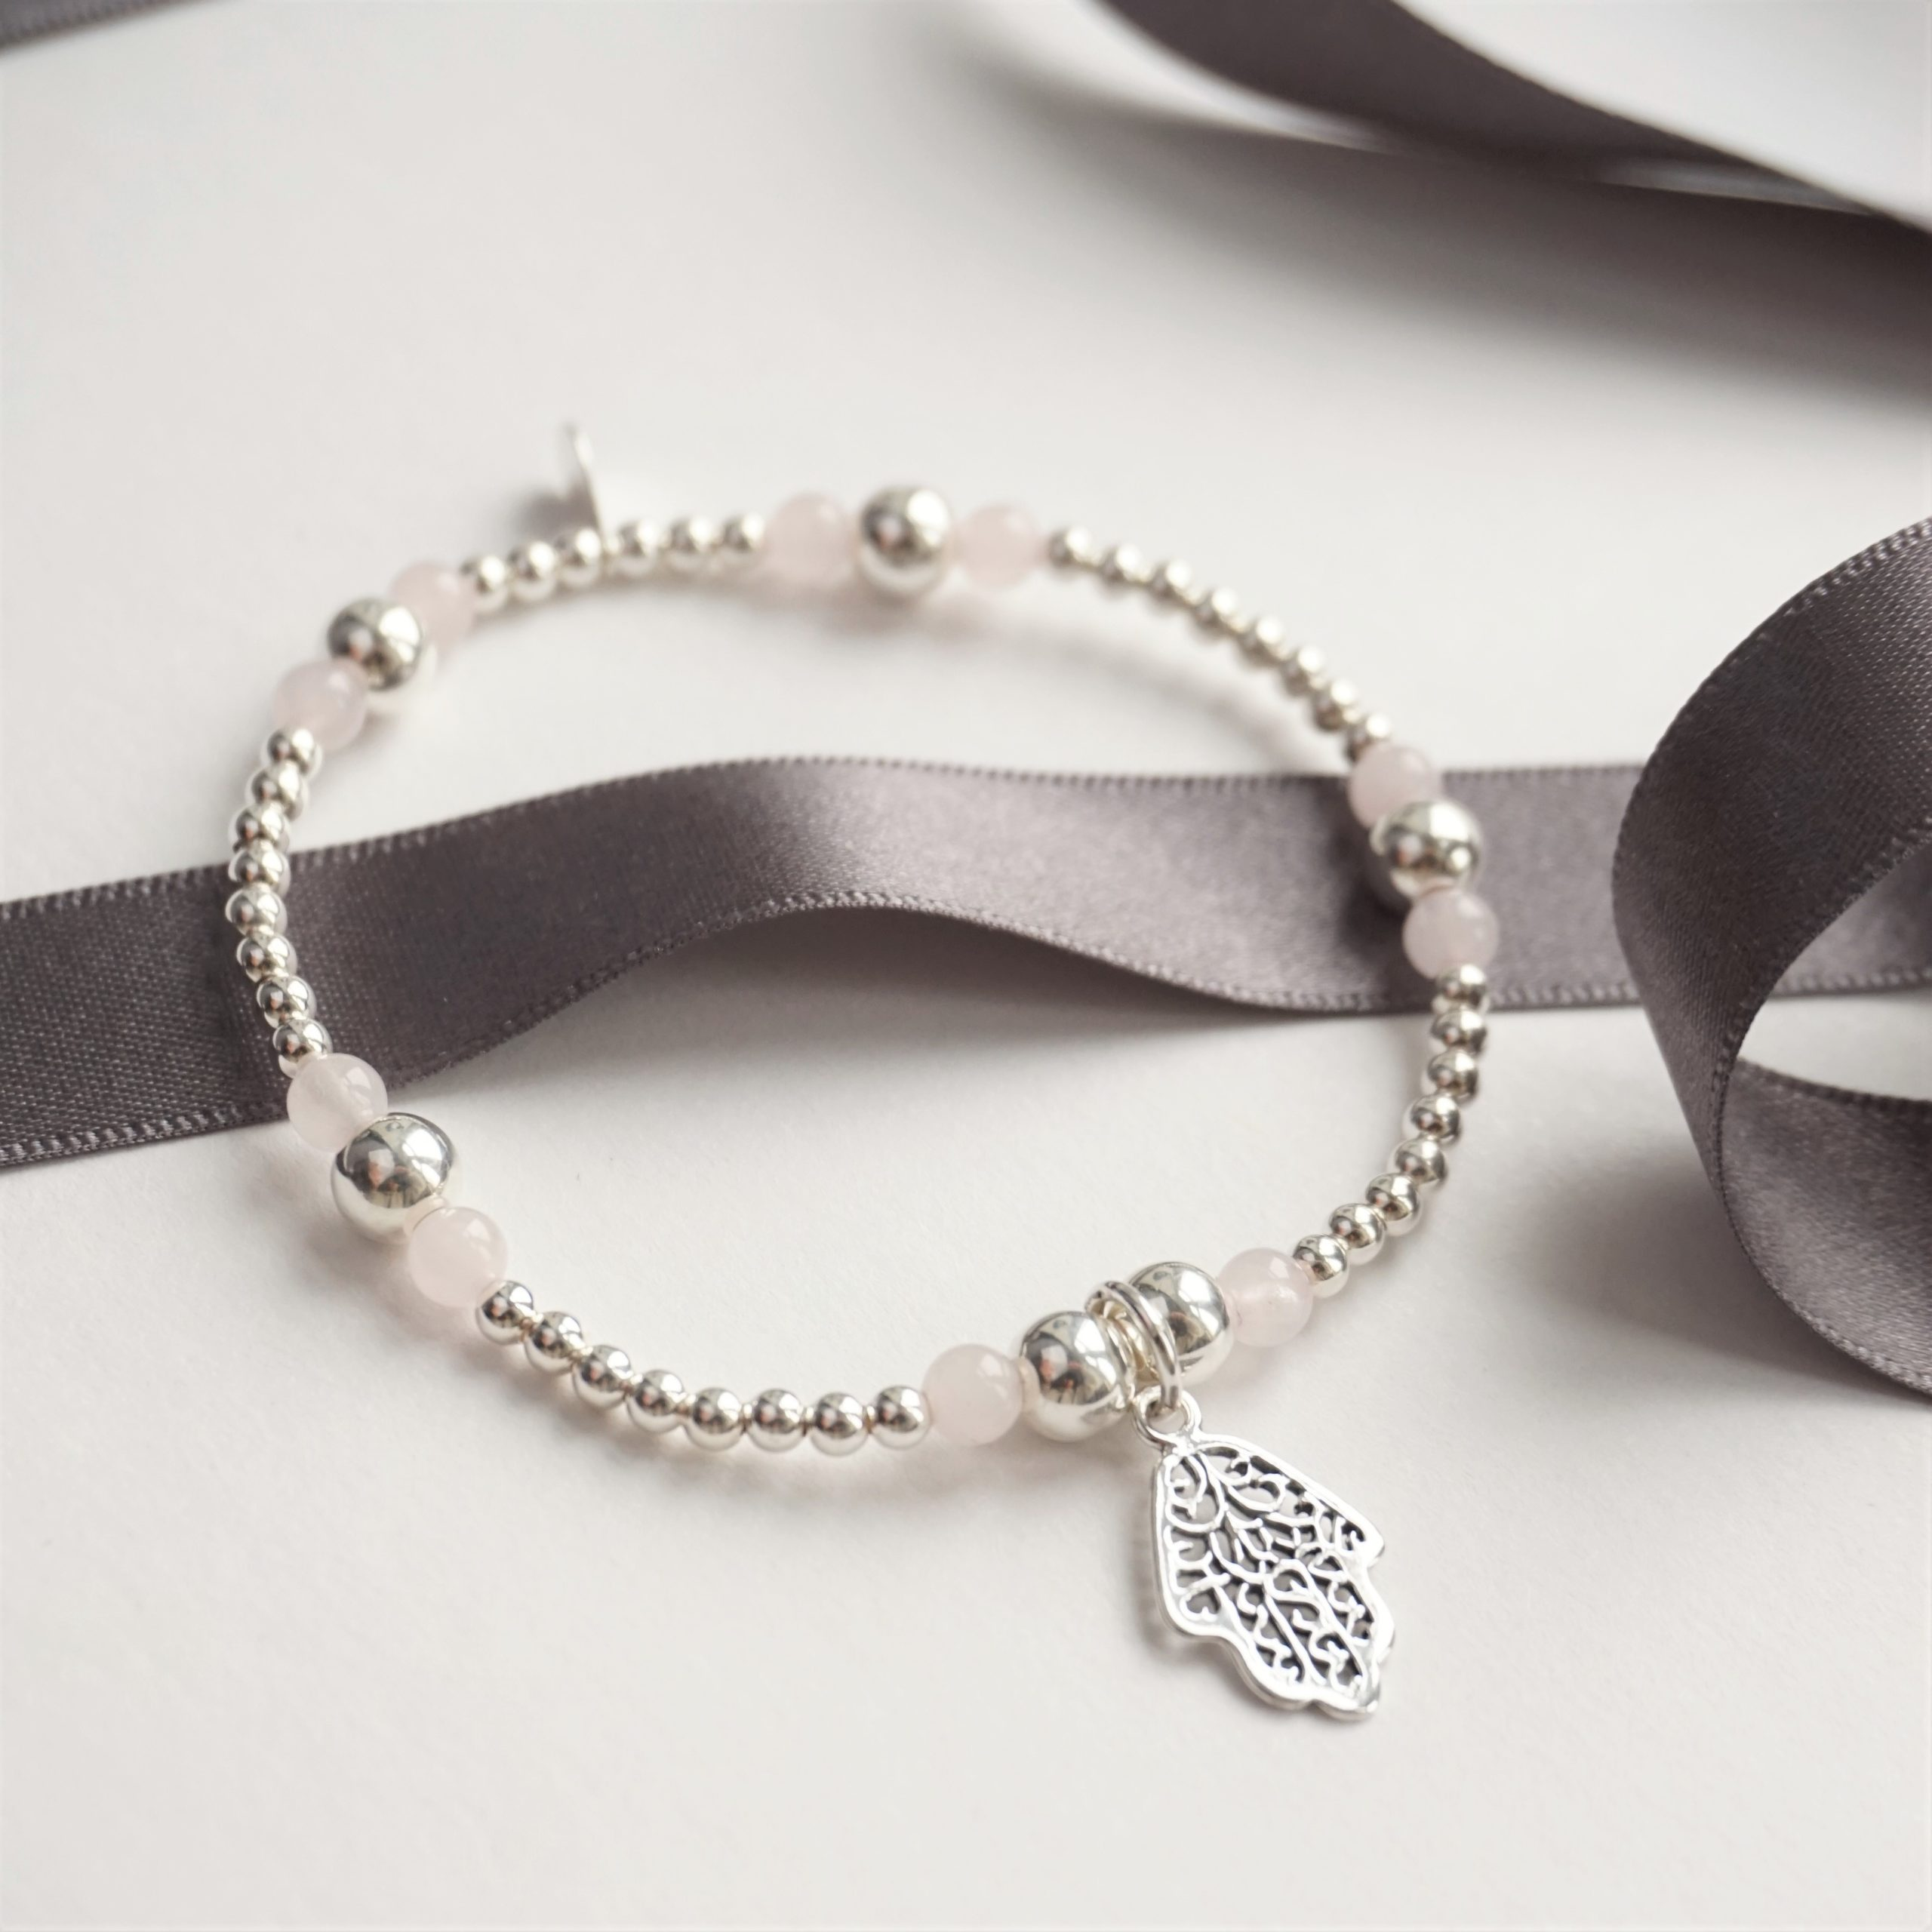 sterling silver bracelet with rose quartz beads and hamsa hand charm